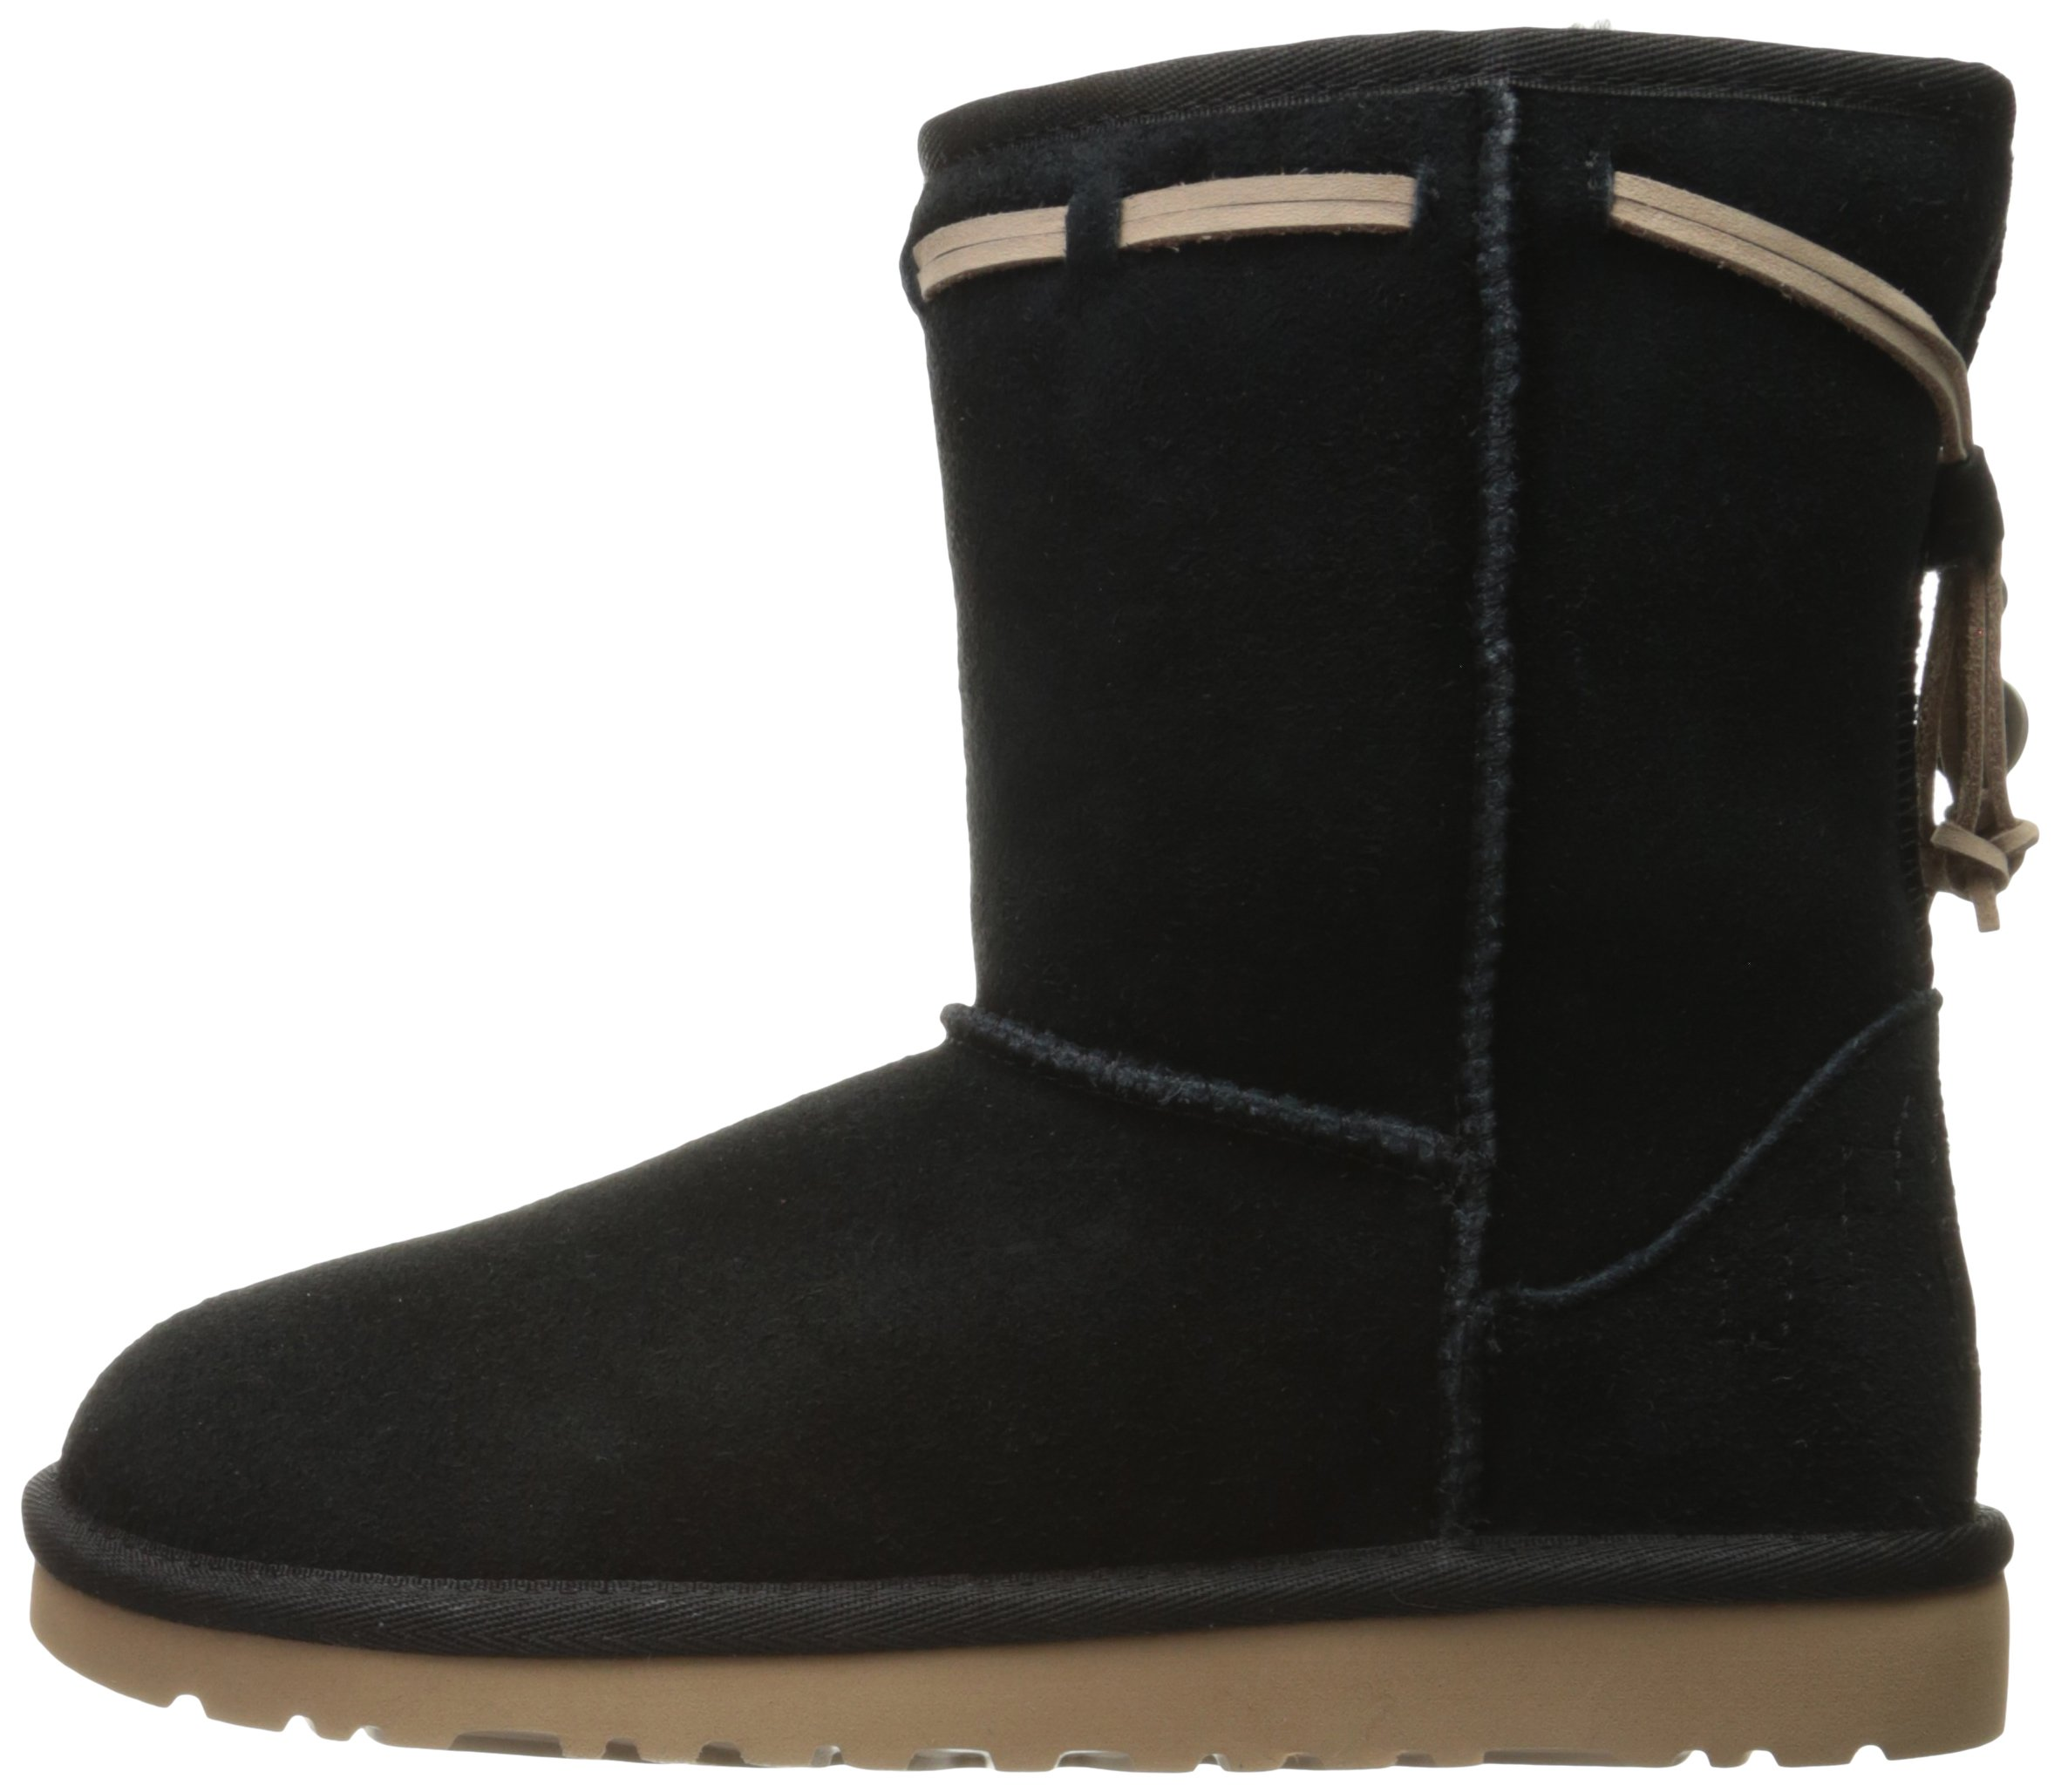 UGG Kids' K Classic Short Carranza Pull-on Boot, Black, 2 M US Little Kid by UGG (Image #5)